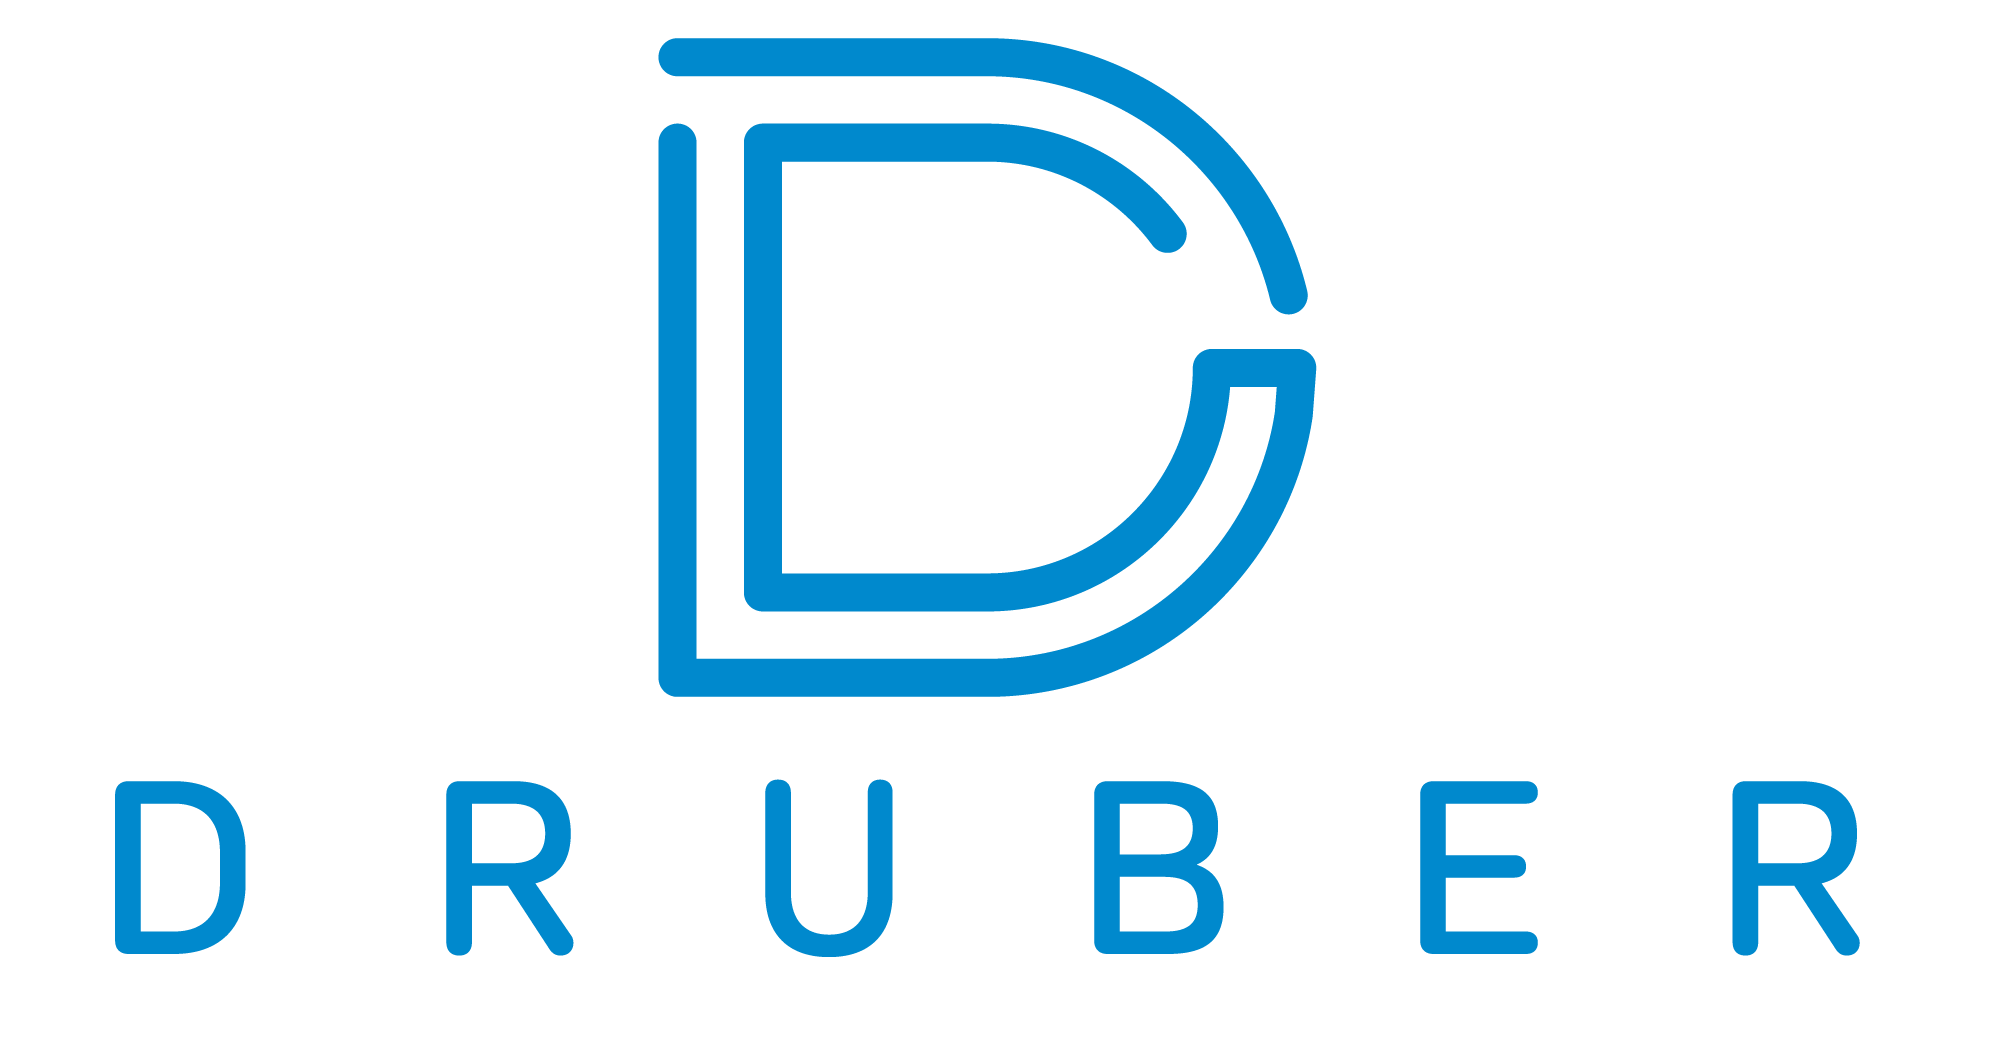 DRUBER CARD icon